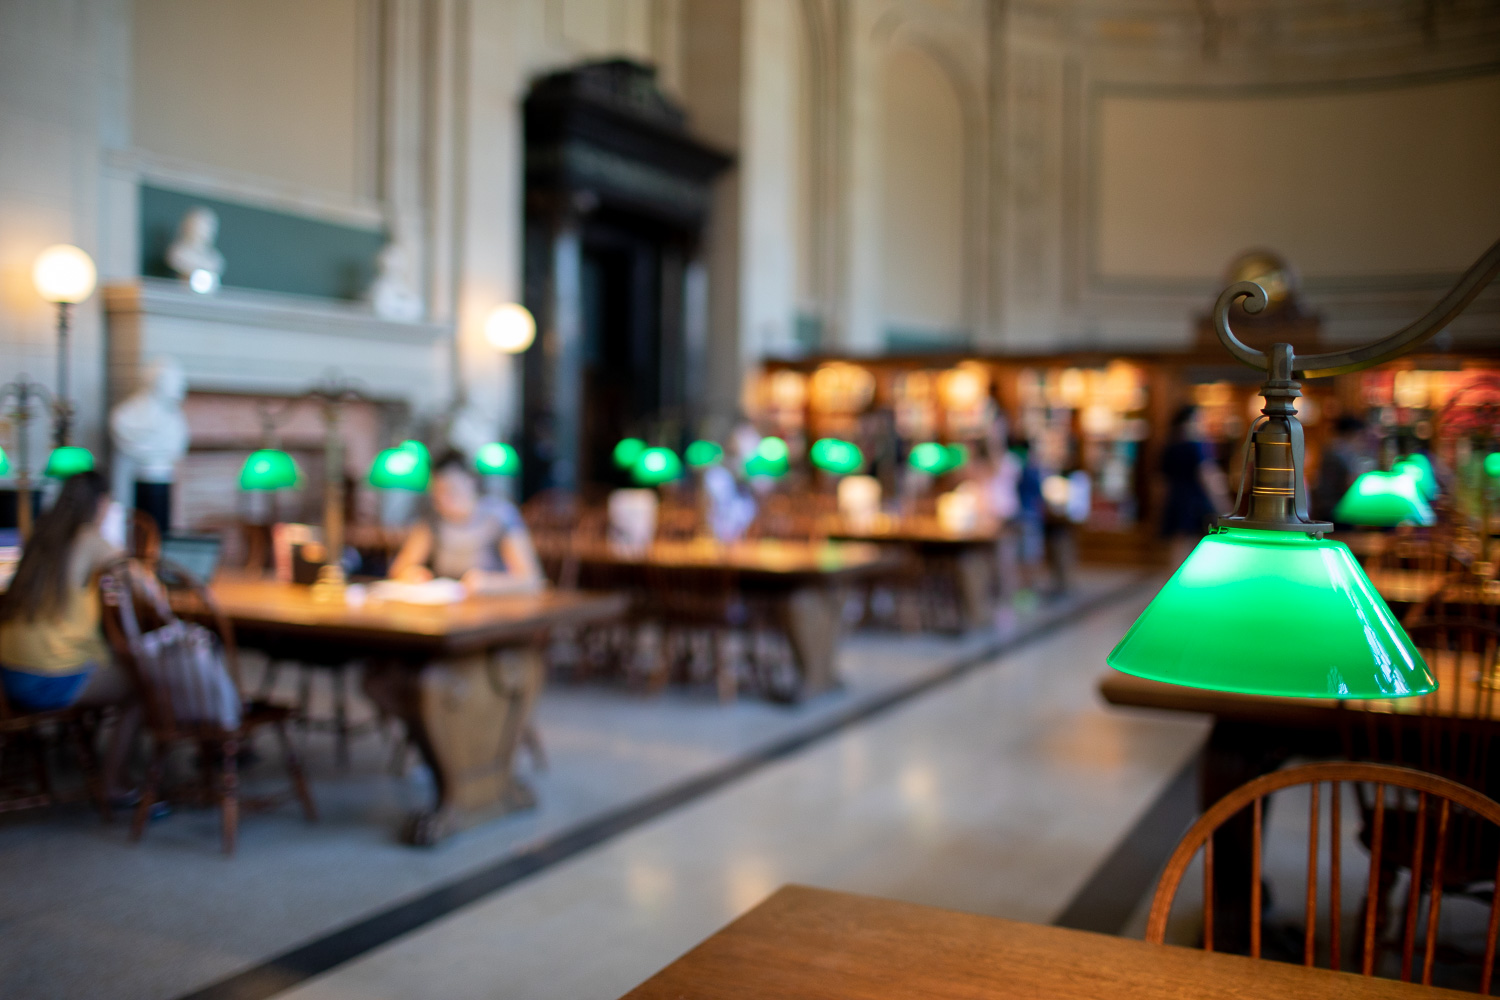 The striking green lamps at Bates Hall.